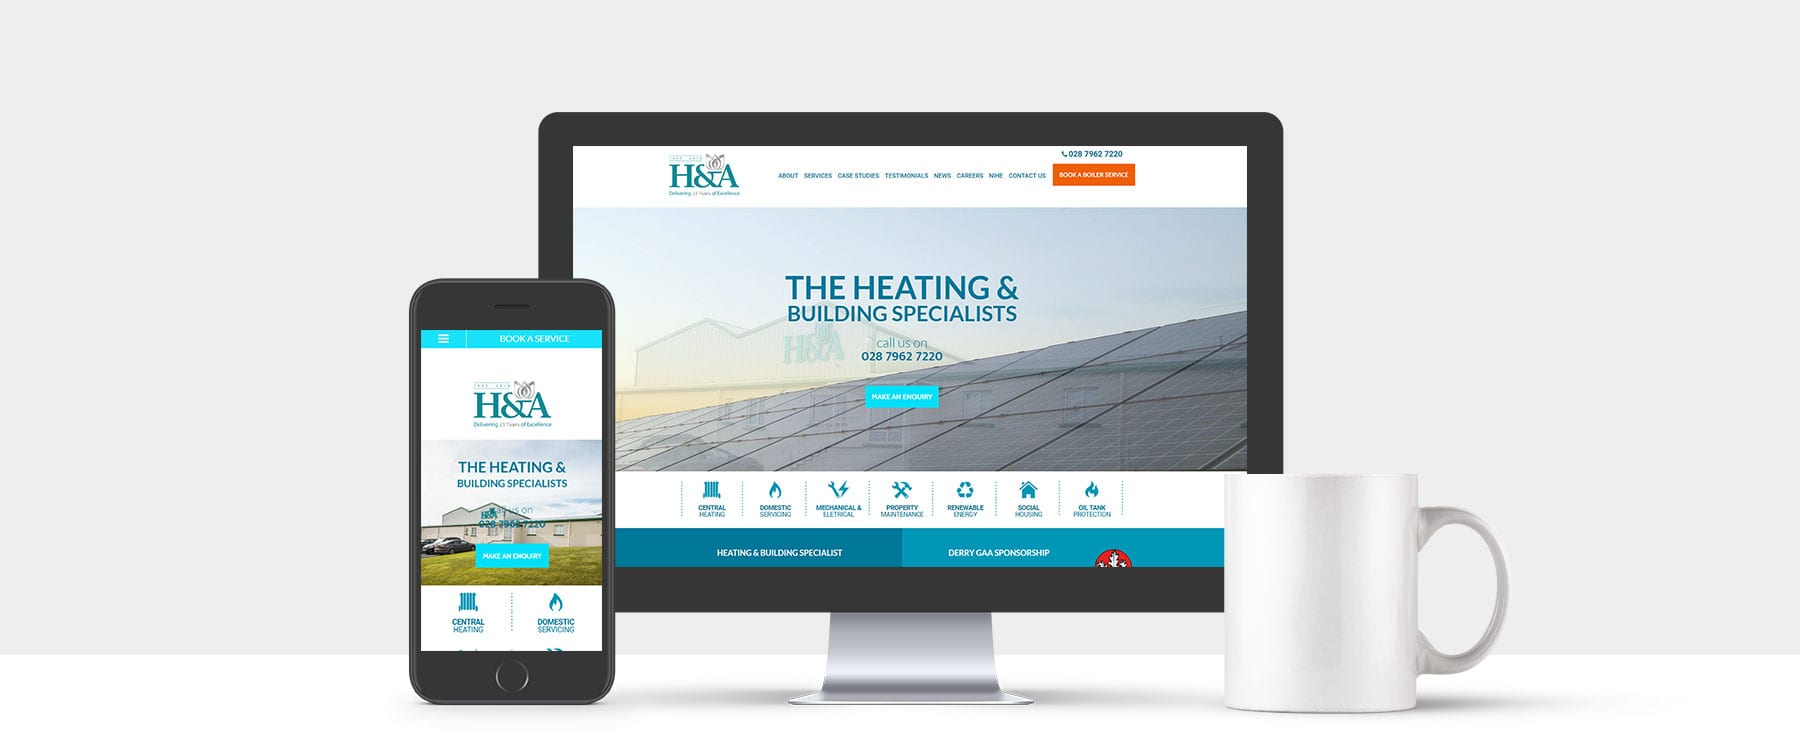 Heating & Building Specialists H&A Mechanical Launch New Modern Website Image